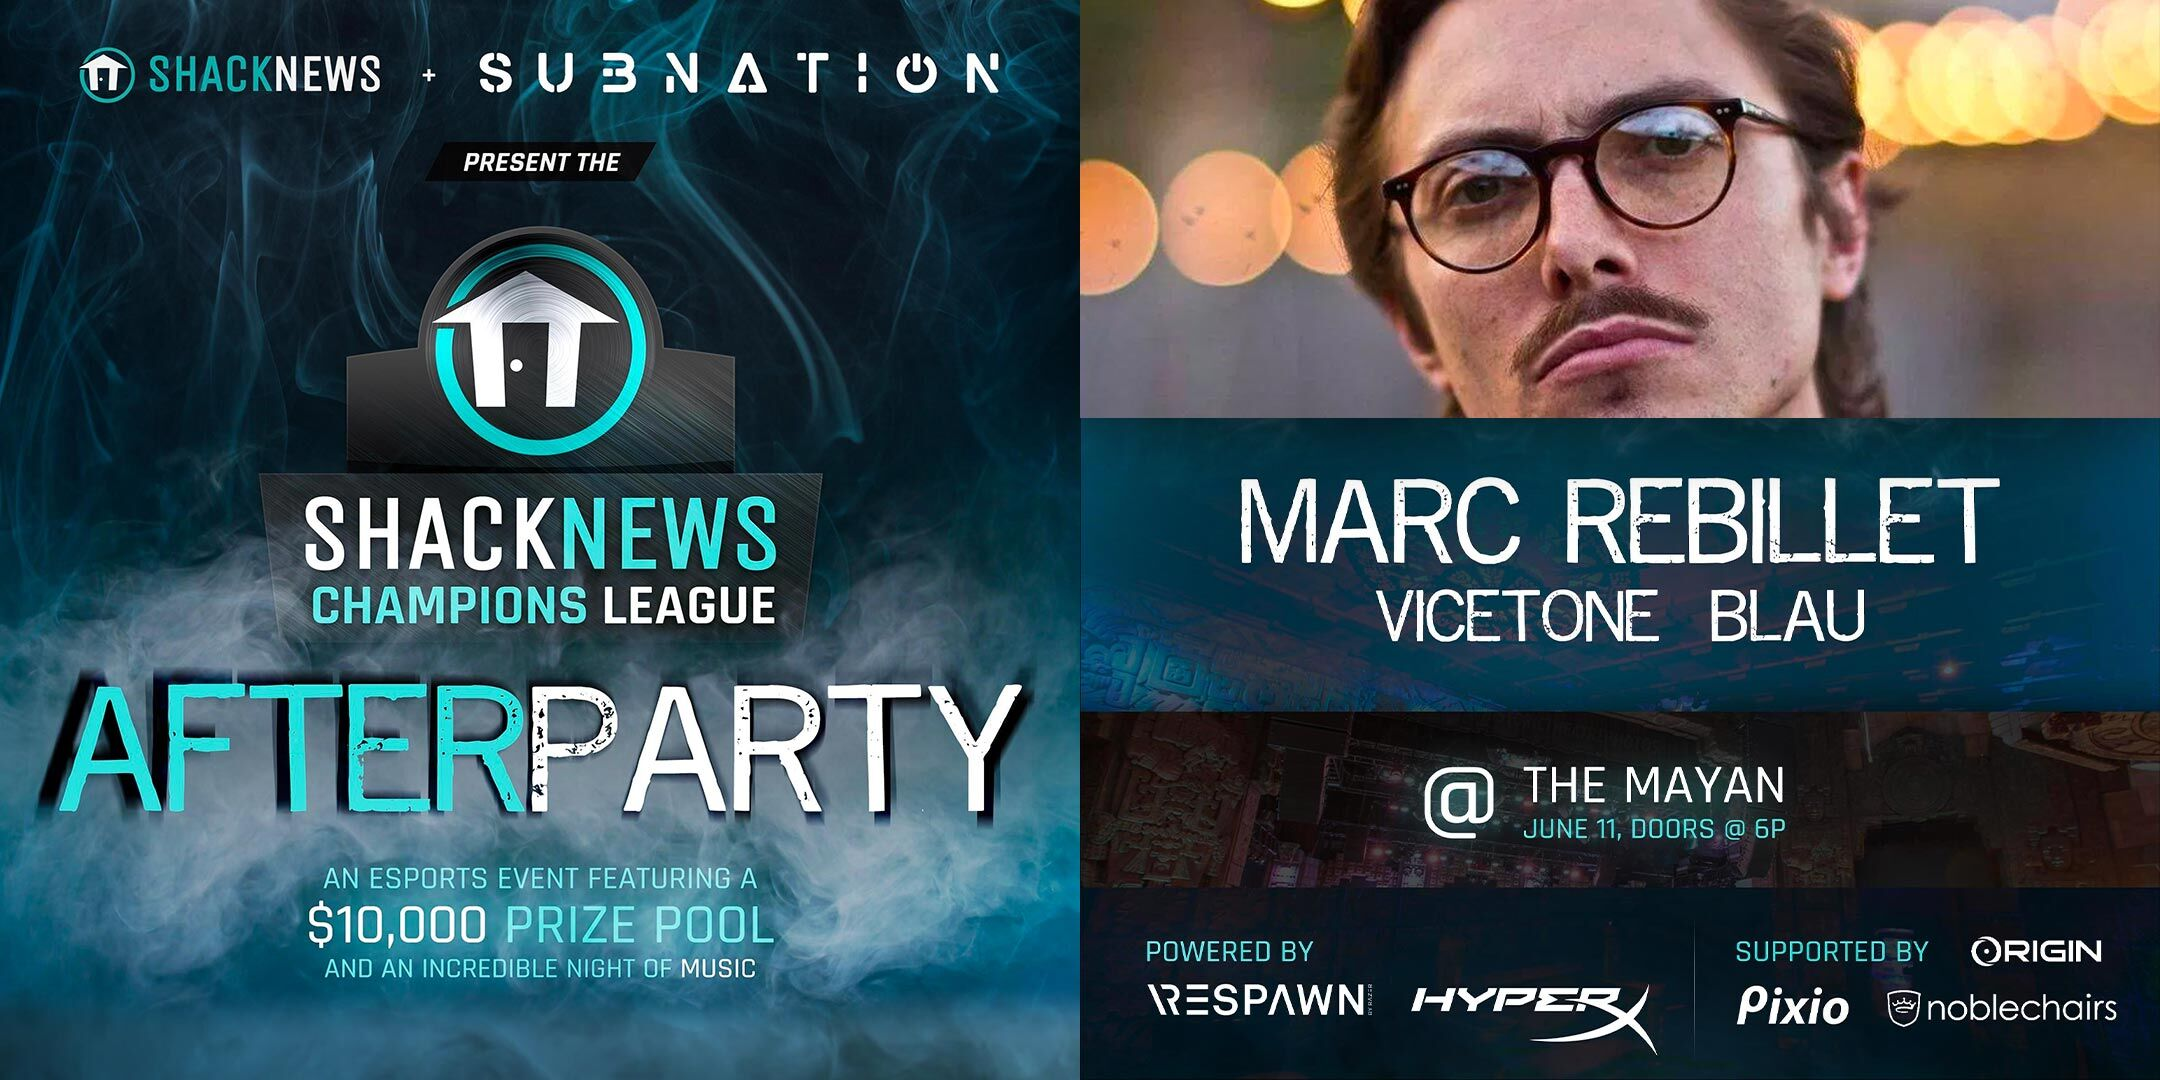 E3 2019 parties - Shacknews Champions League E3 After Party Marc Rebillet